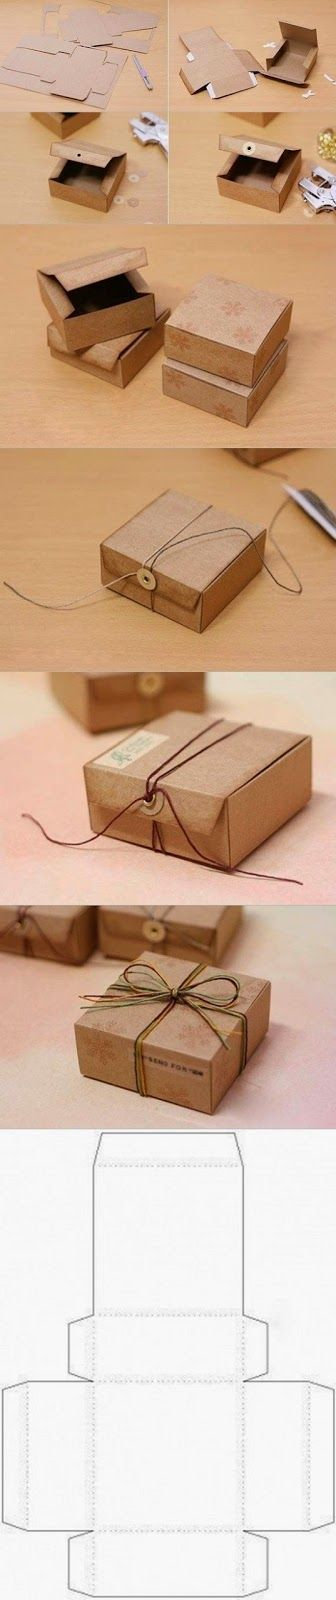 gift-box-from-cardboard-tutorial.jpg 336×1,600 pixels